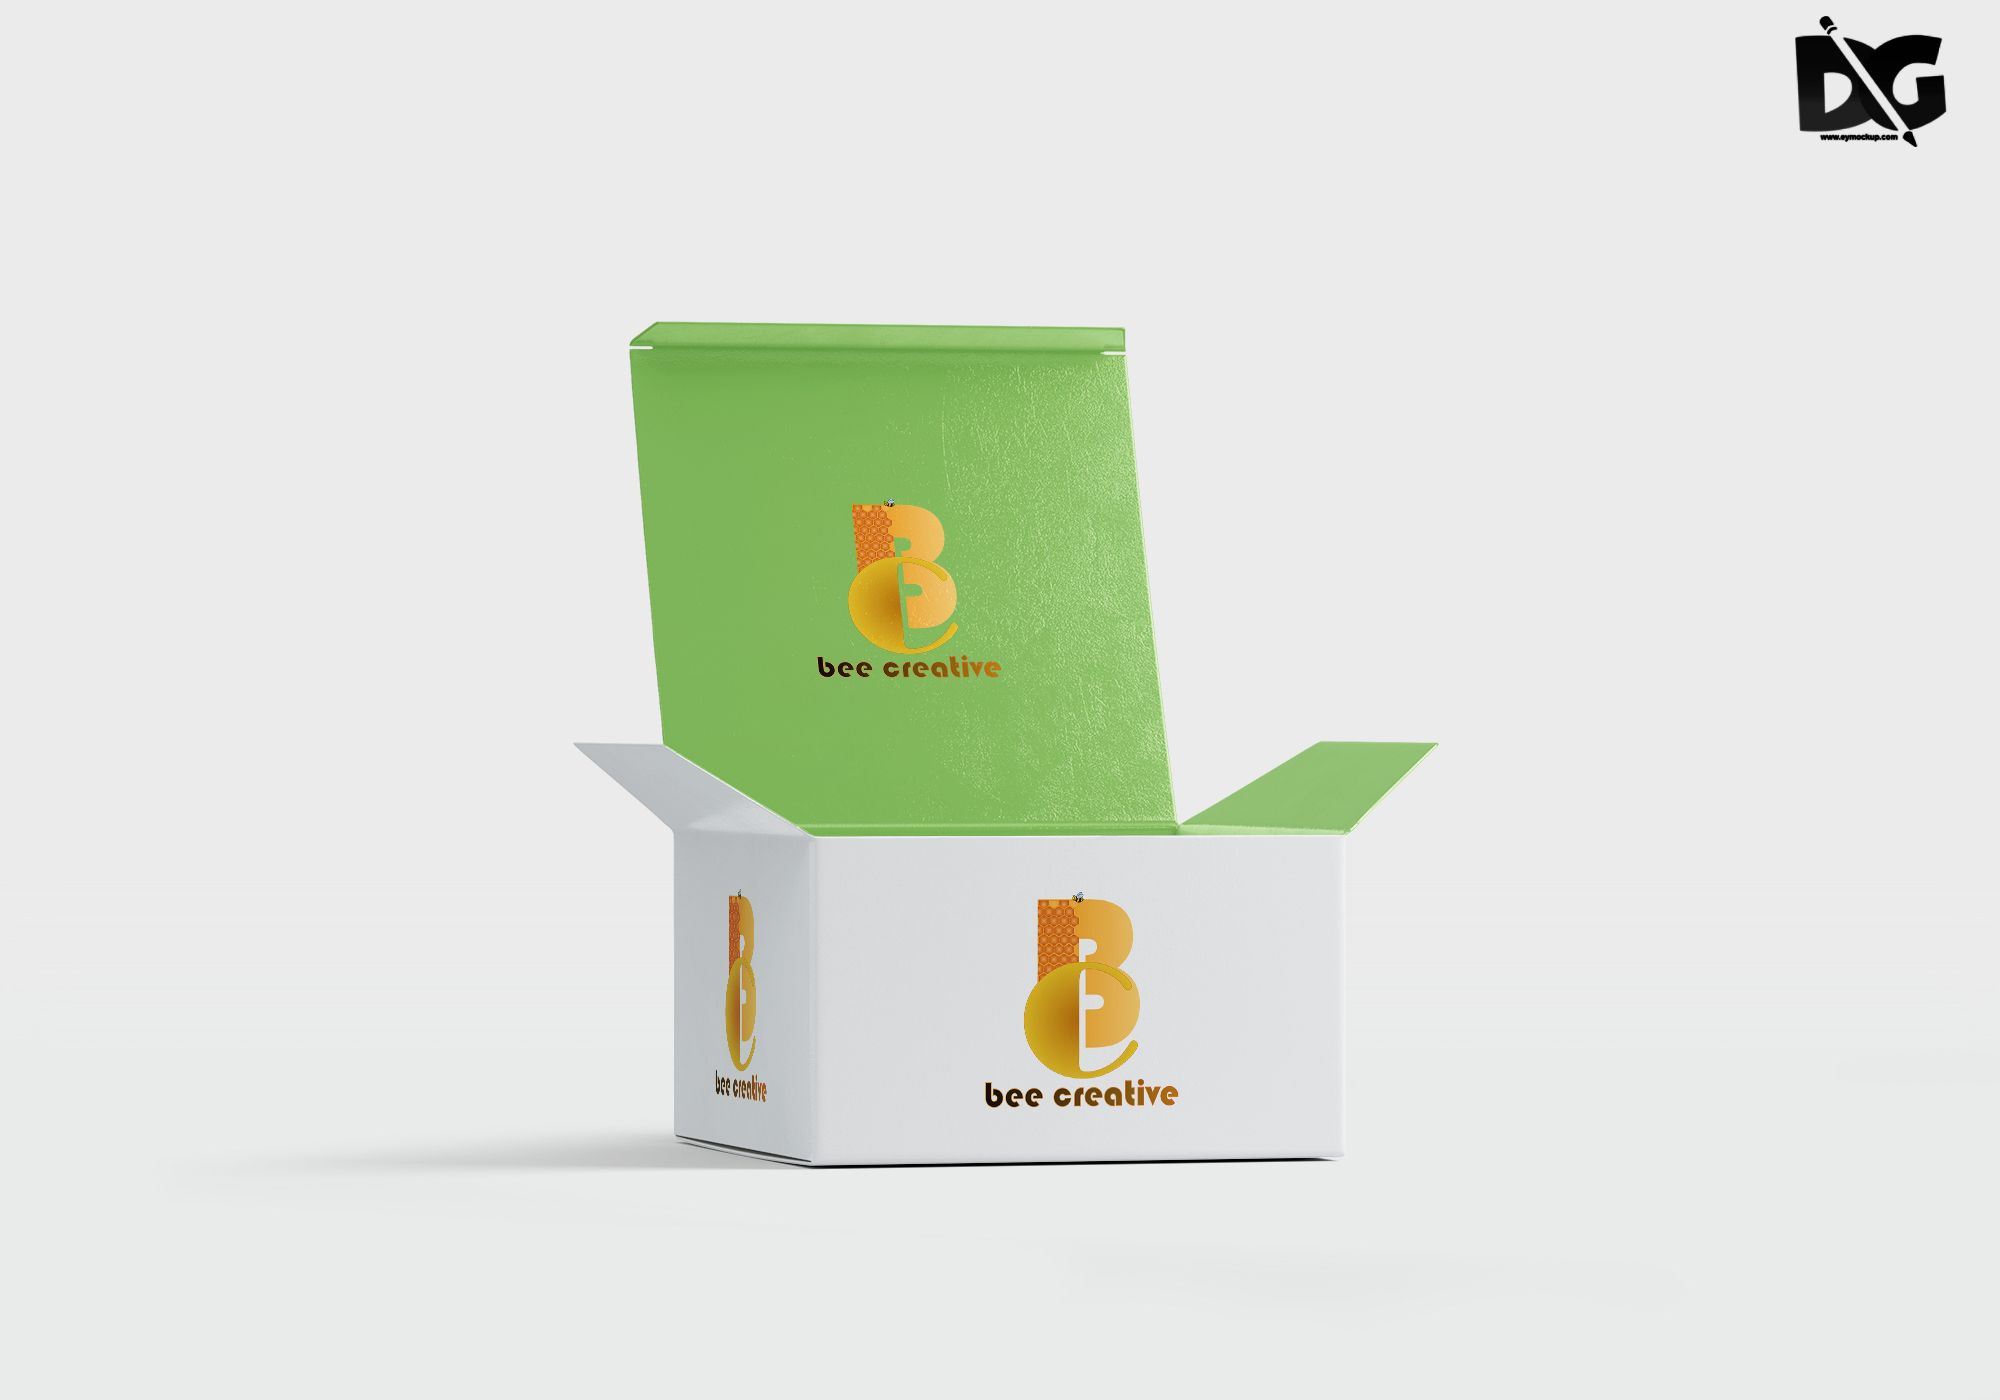 Download In Order To Help You Present A Logo Design Mockup To Your Client In A Super Polished Way We Ve Gathered The Acr Mockup Free Psd Logo Design Mockup Acrylic Box